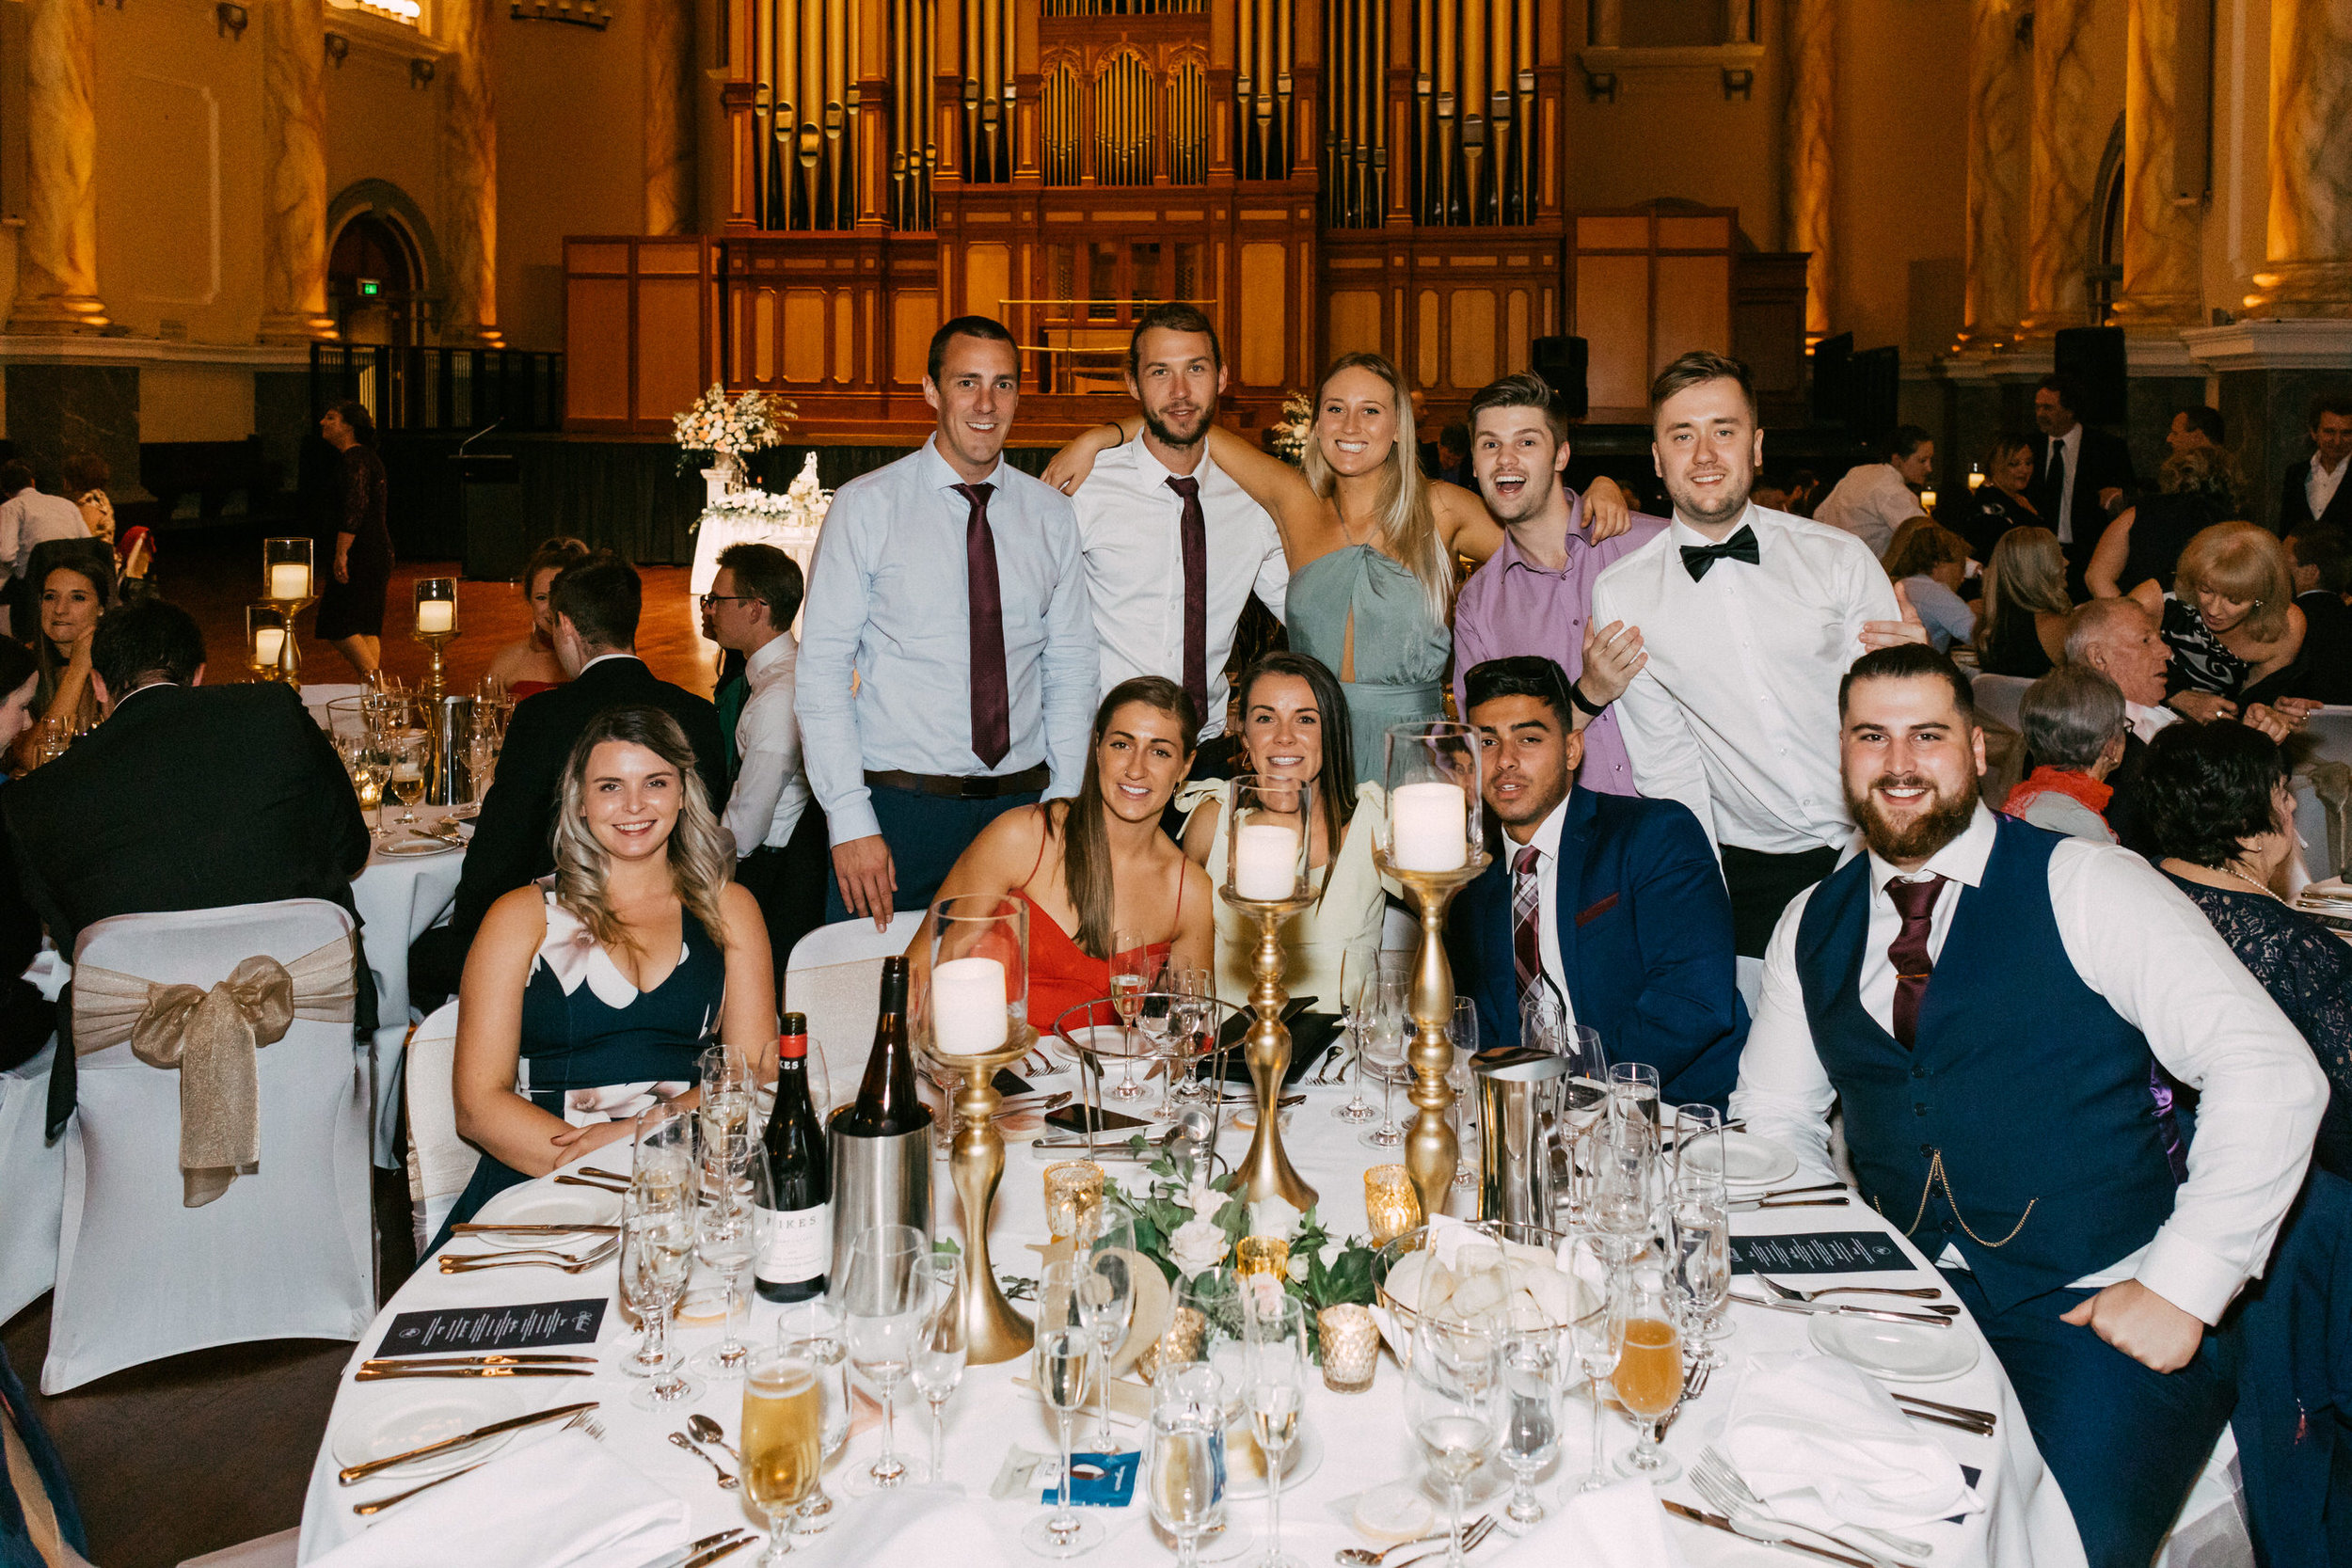 Adelaide Wedding 2019 148.jpg